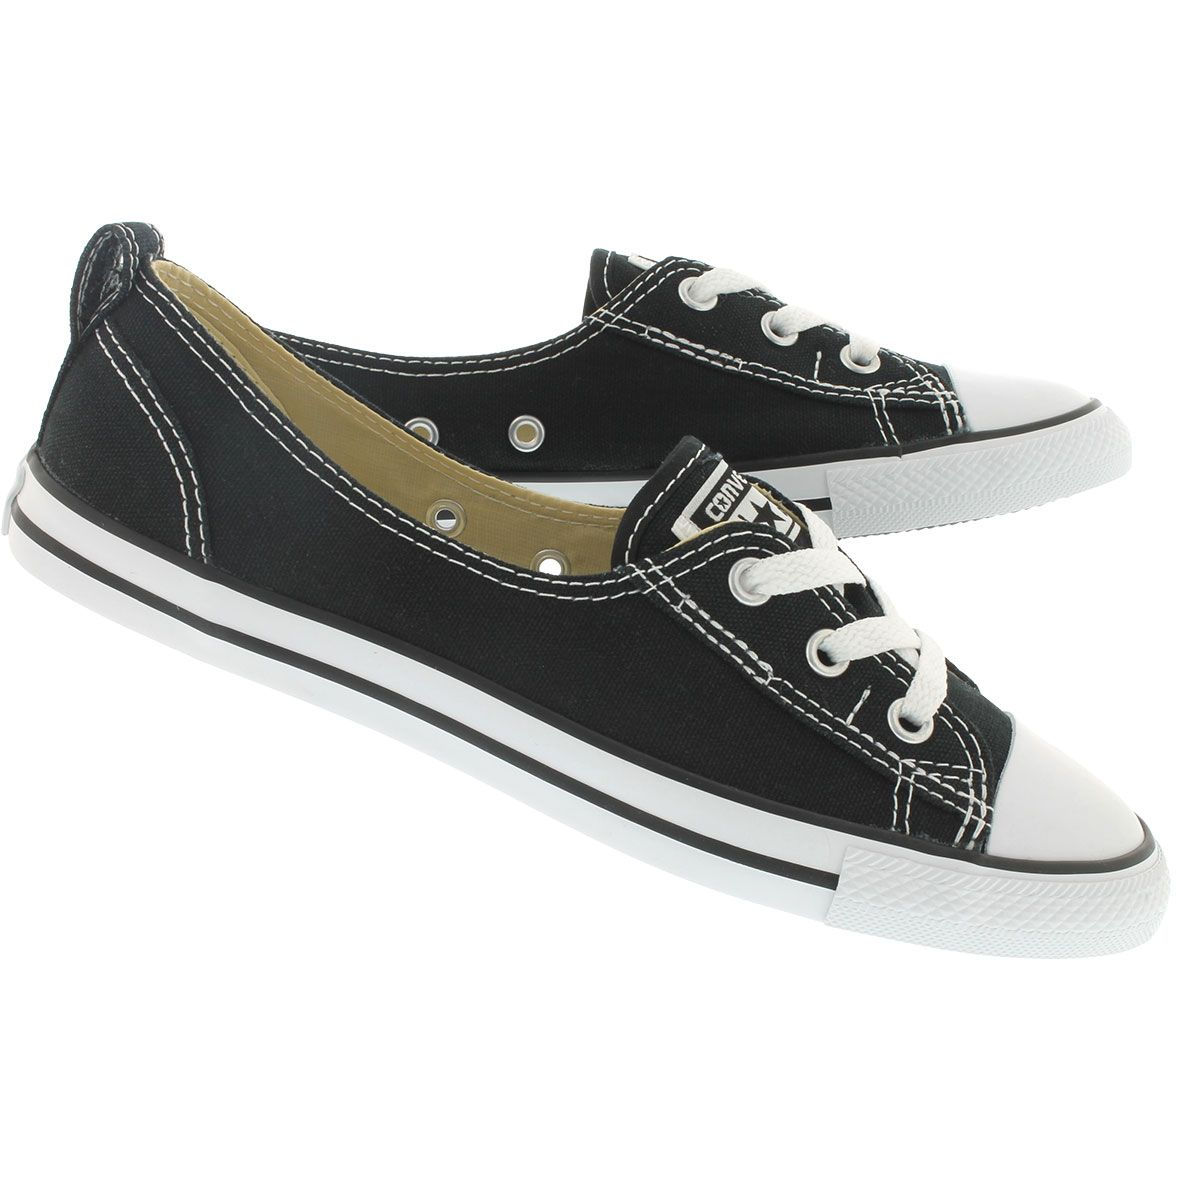 7a6ebd6e1d42 Converse Womens CT ALL STAR BALLET LACE black slip-ons 547162C